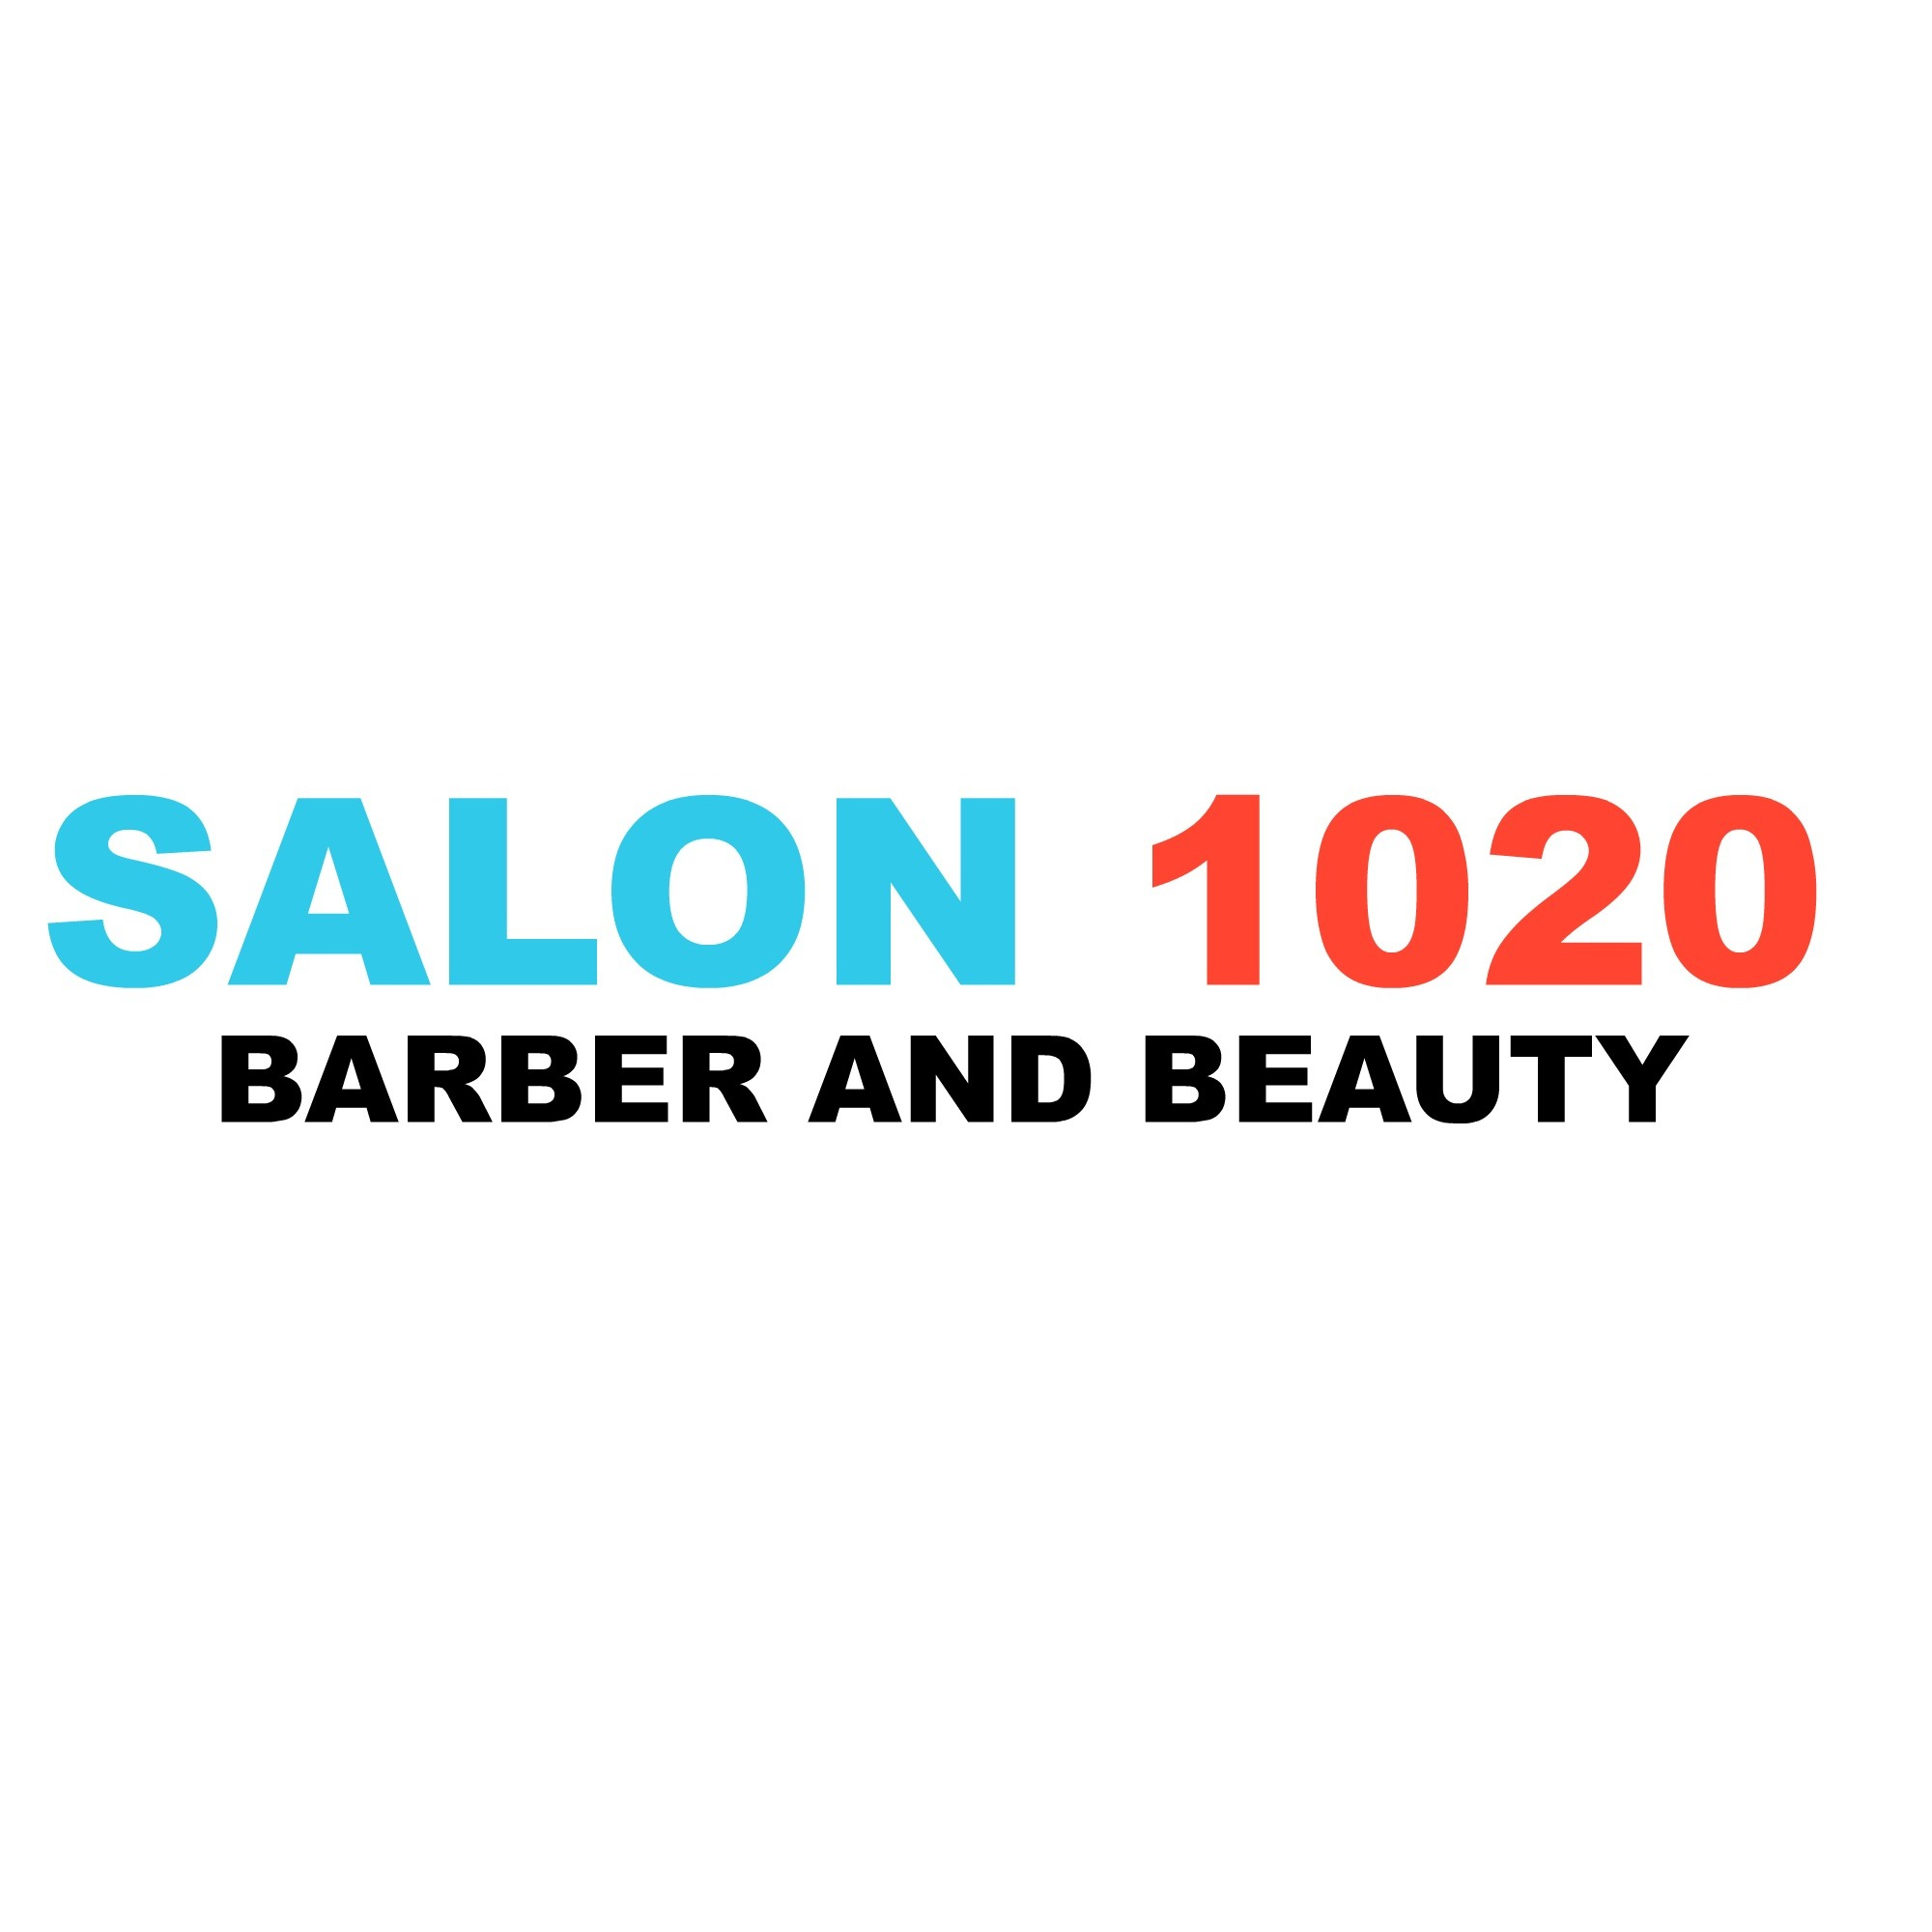 Salon 1020 barber beauty irving texas tx for 504 salon irving